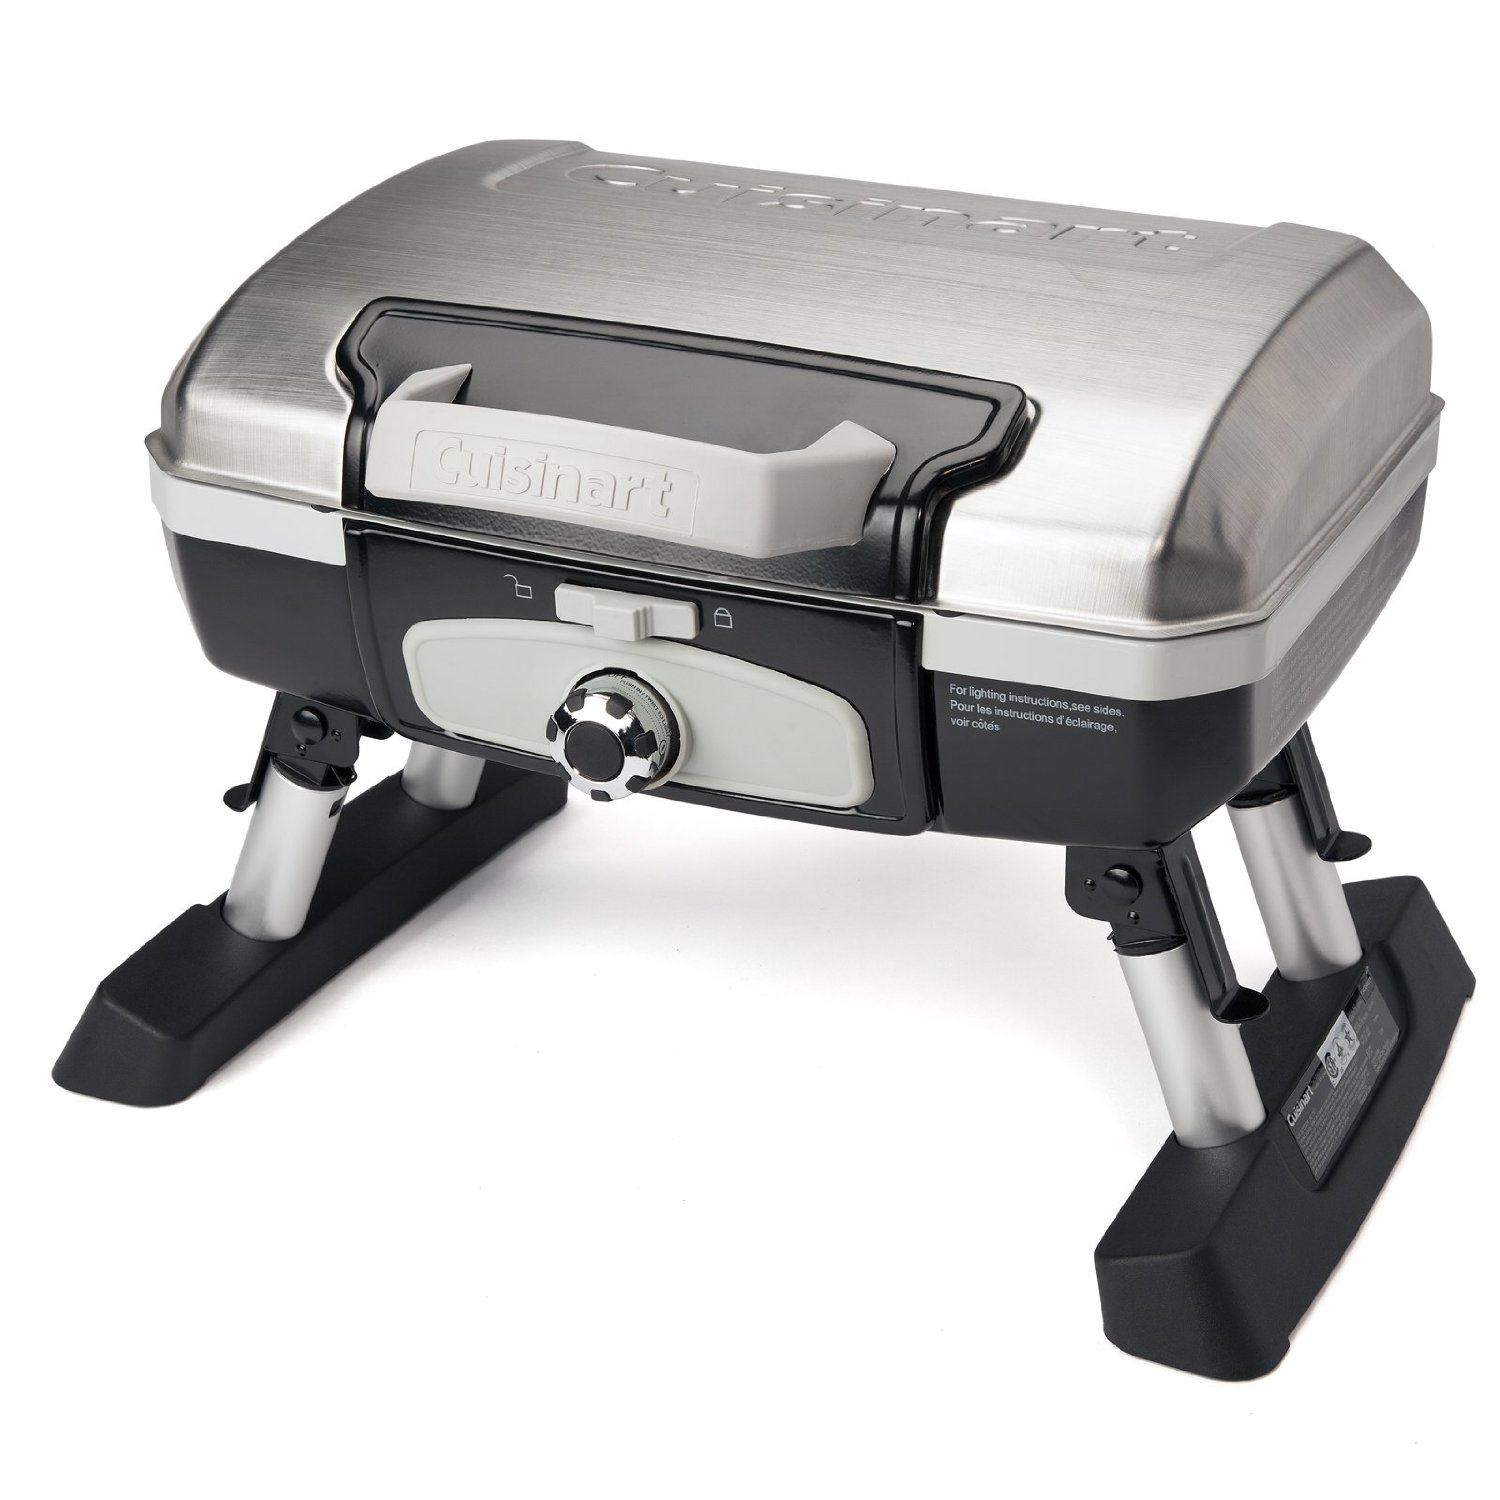 Cuisinart Petit Gourmet Portable Tabletop Outdoor LP Gas Grill, Silver/Black